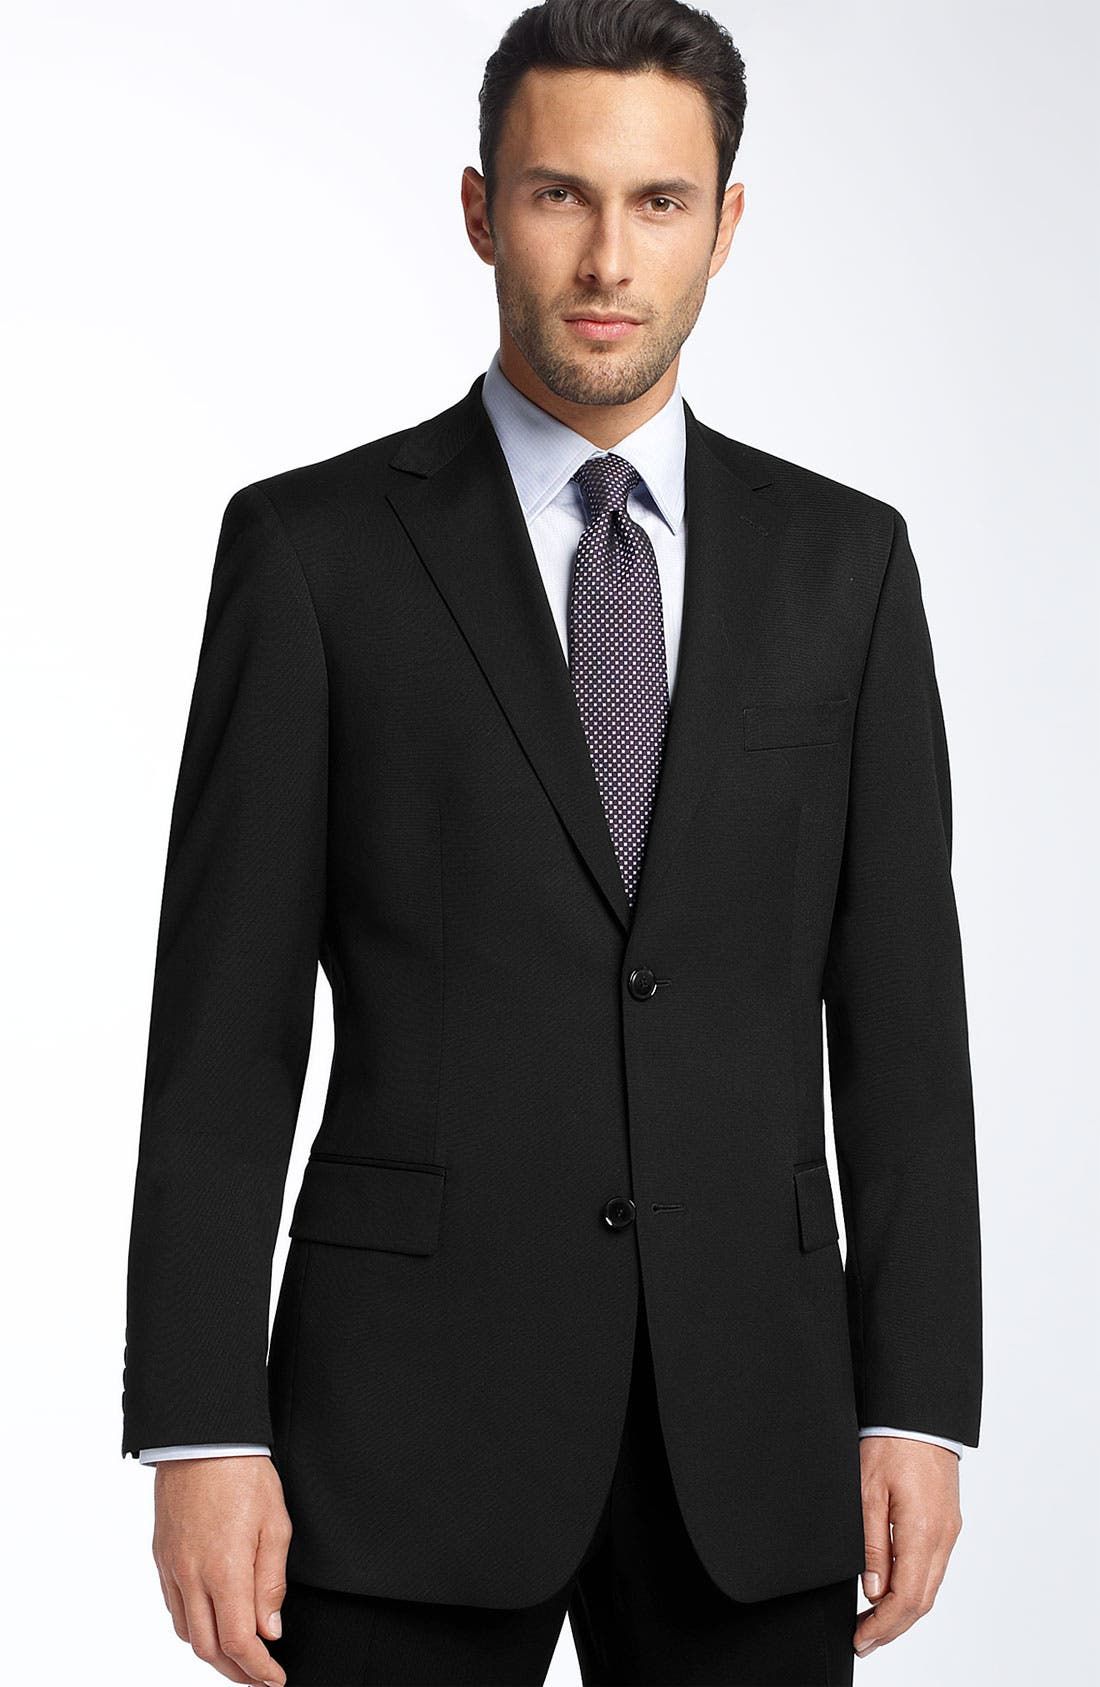 BOSS HUGO BOSS 'Pasolini' Black Virgin Wool Sportcoat, Main, color, 001